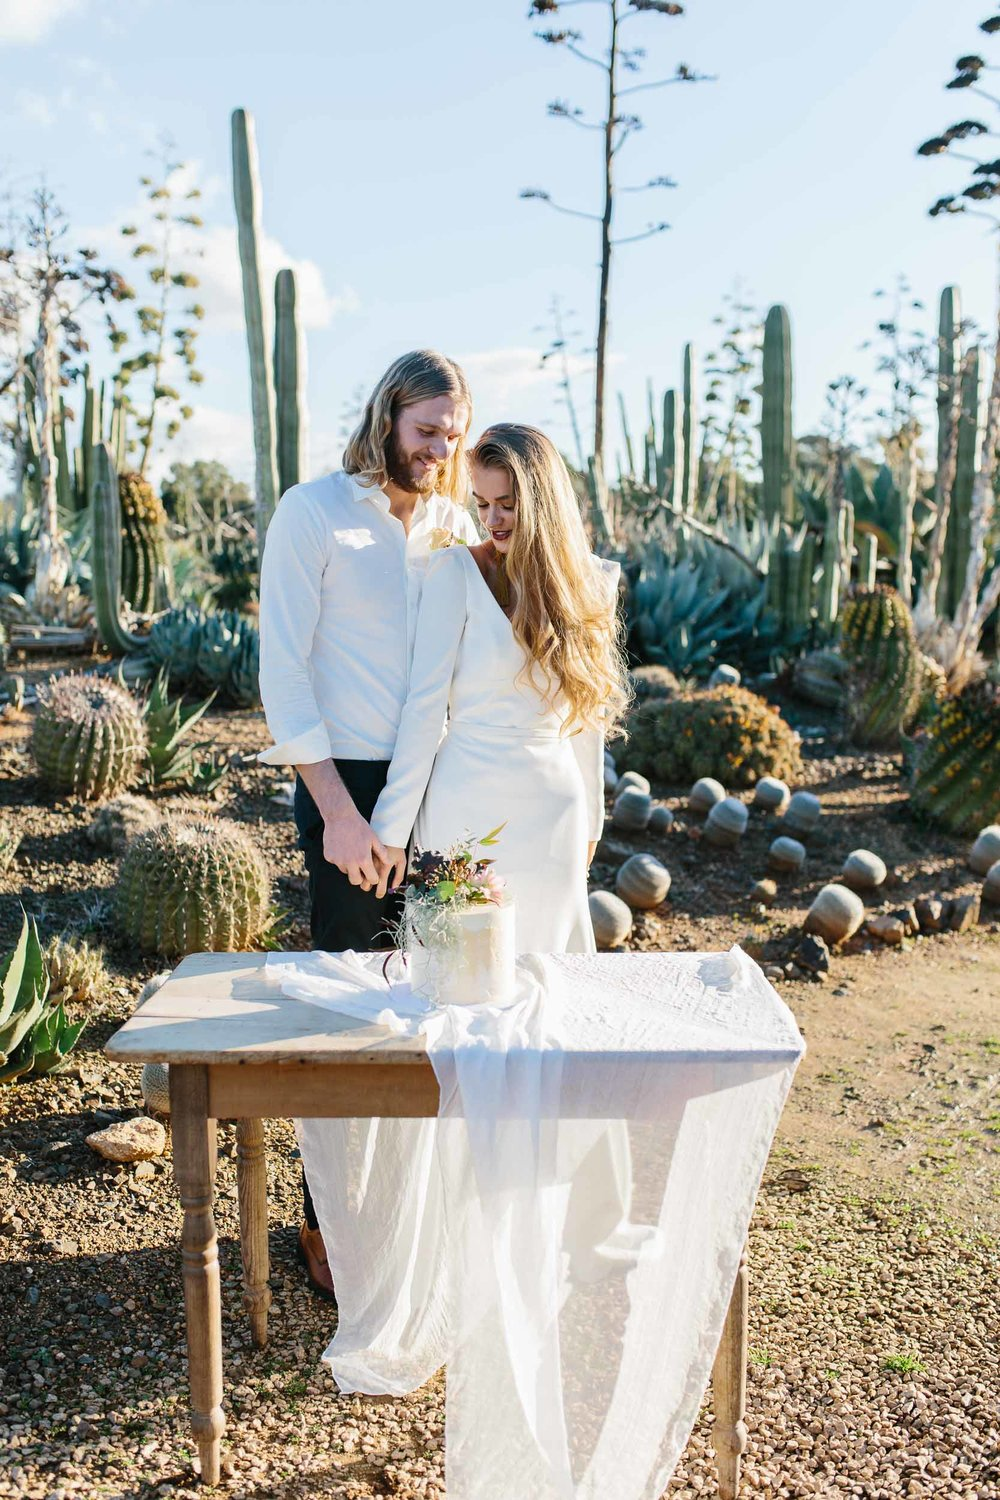 Kas-Richards-Ruby-and-James-Stylist-Cactus-Country-Karen-Willis-Holmes-Bridal-One-Heart-Studios-Boho-Wedding-24.jpg